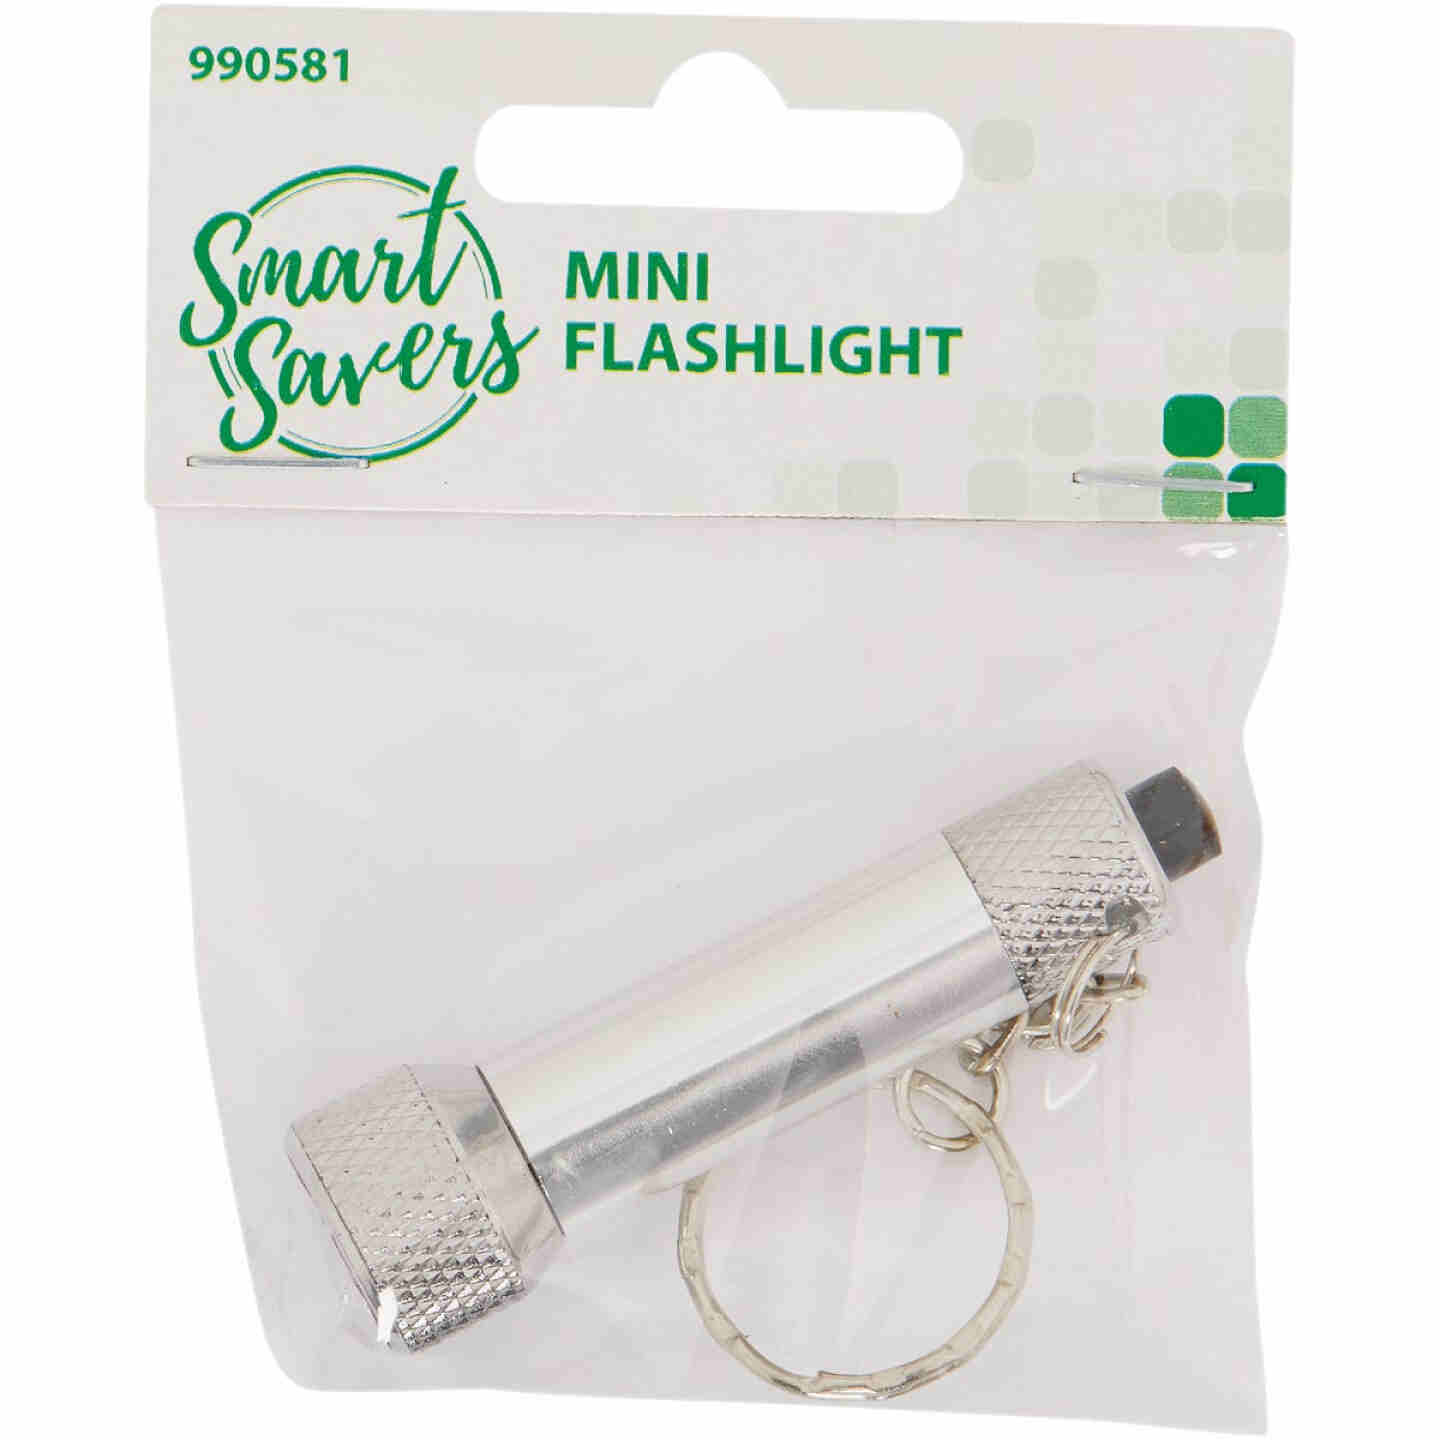 Smart Savers 20 Lm. Mini LED LR44 Flashlight Image 2